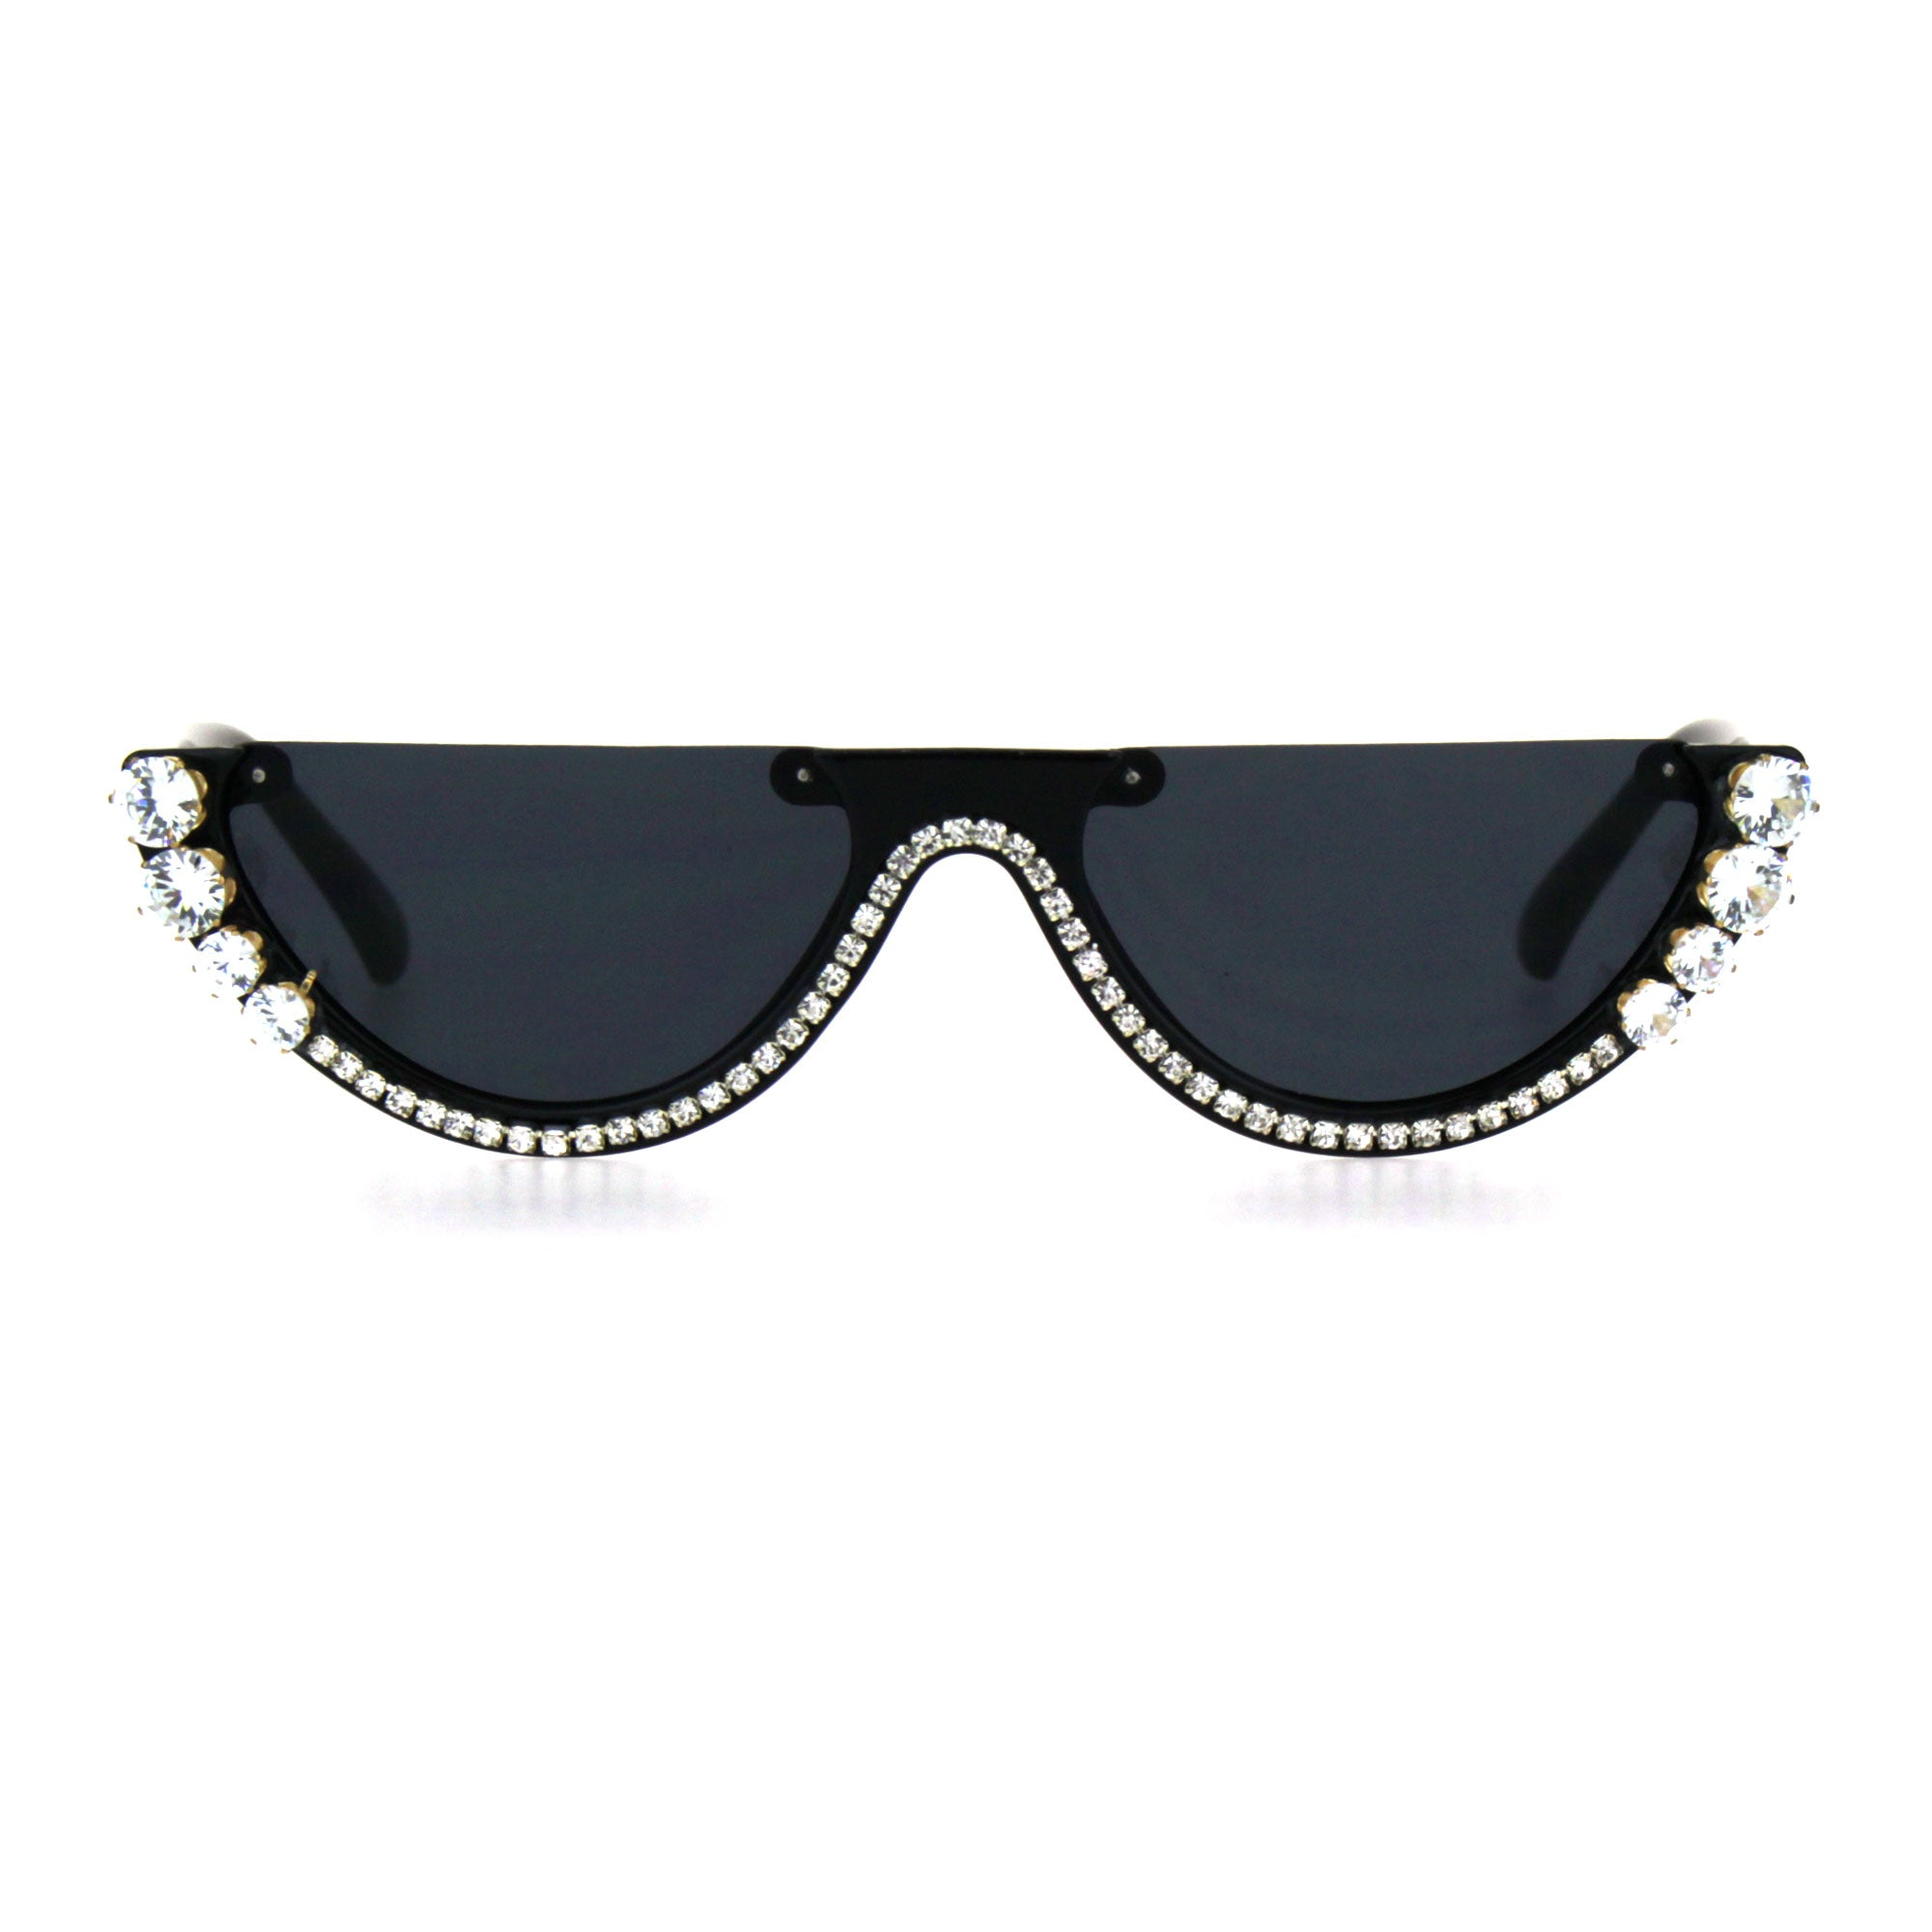 Rhinestone Tennis Iced Chain Crop Flat Top Cat Eye Goth Sunglasses